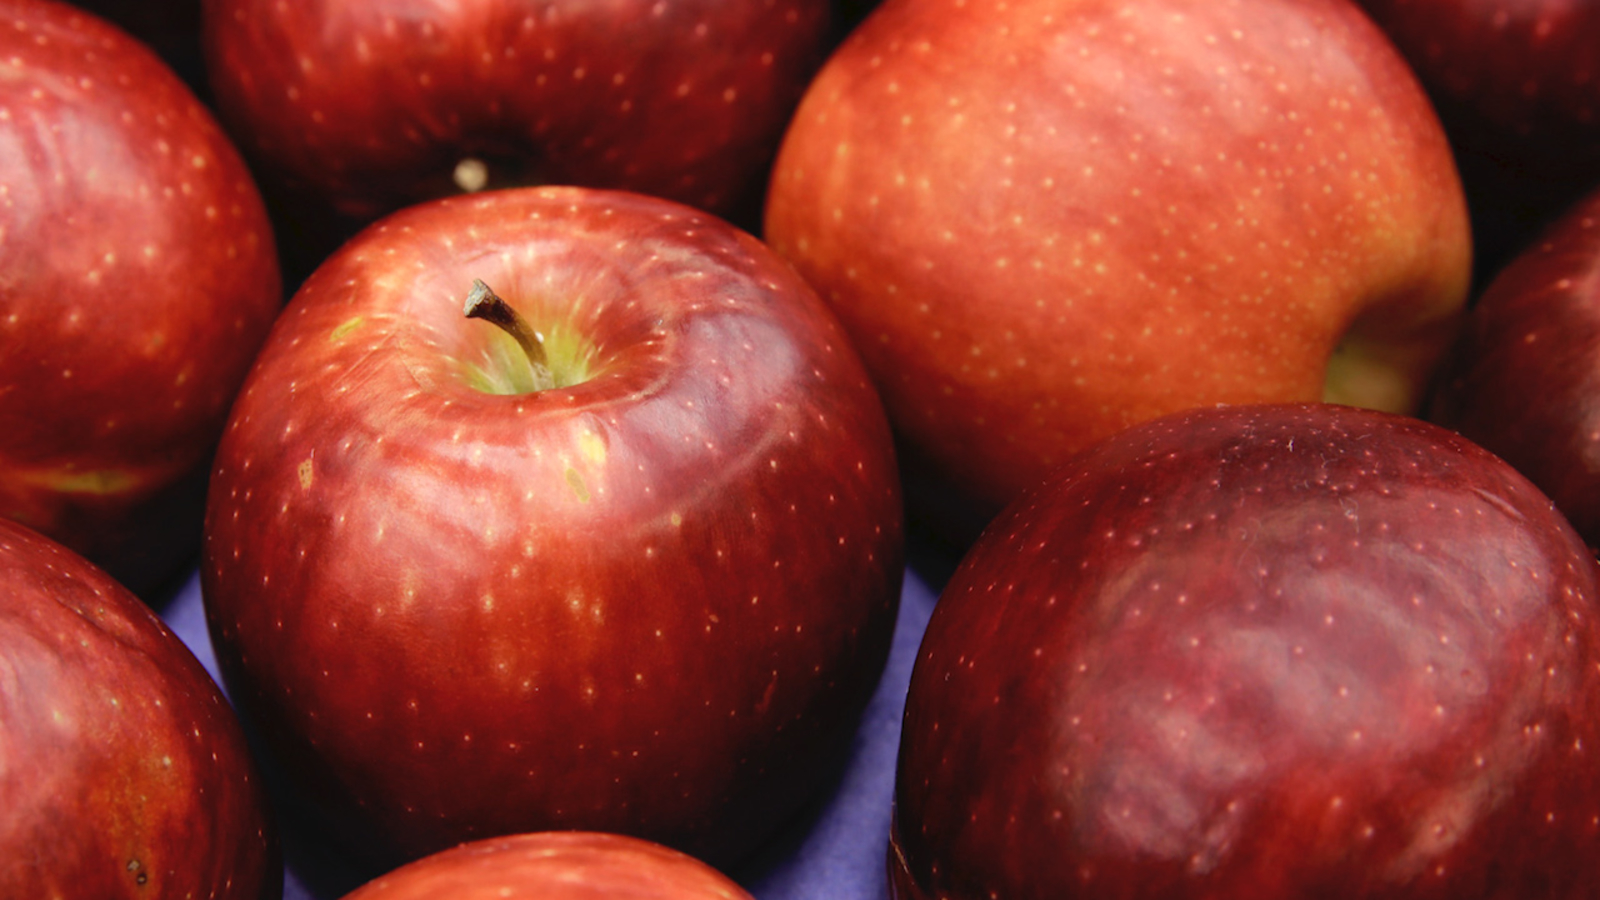 Cosmic 'Ultra-crisp, very juicy' apple variety to debut in stores in December